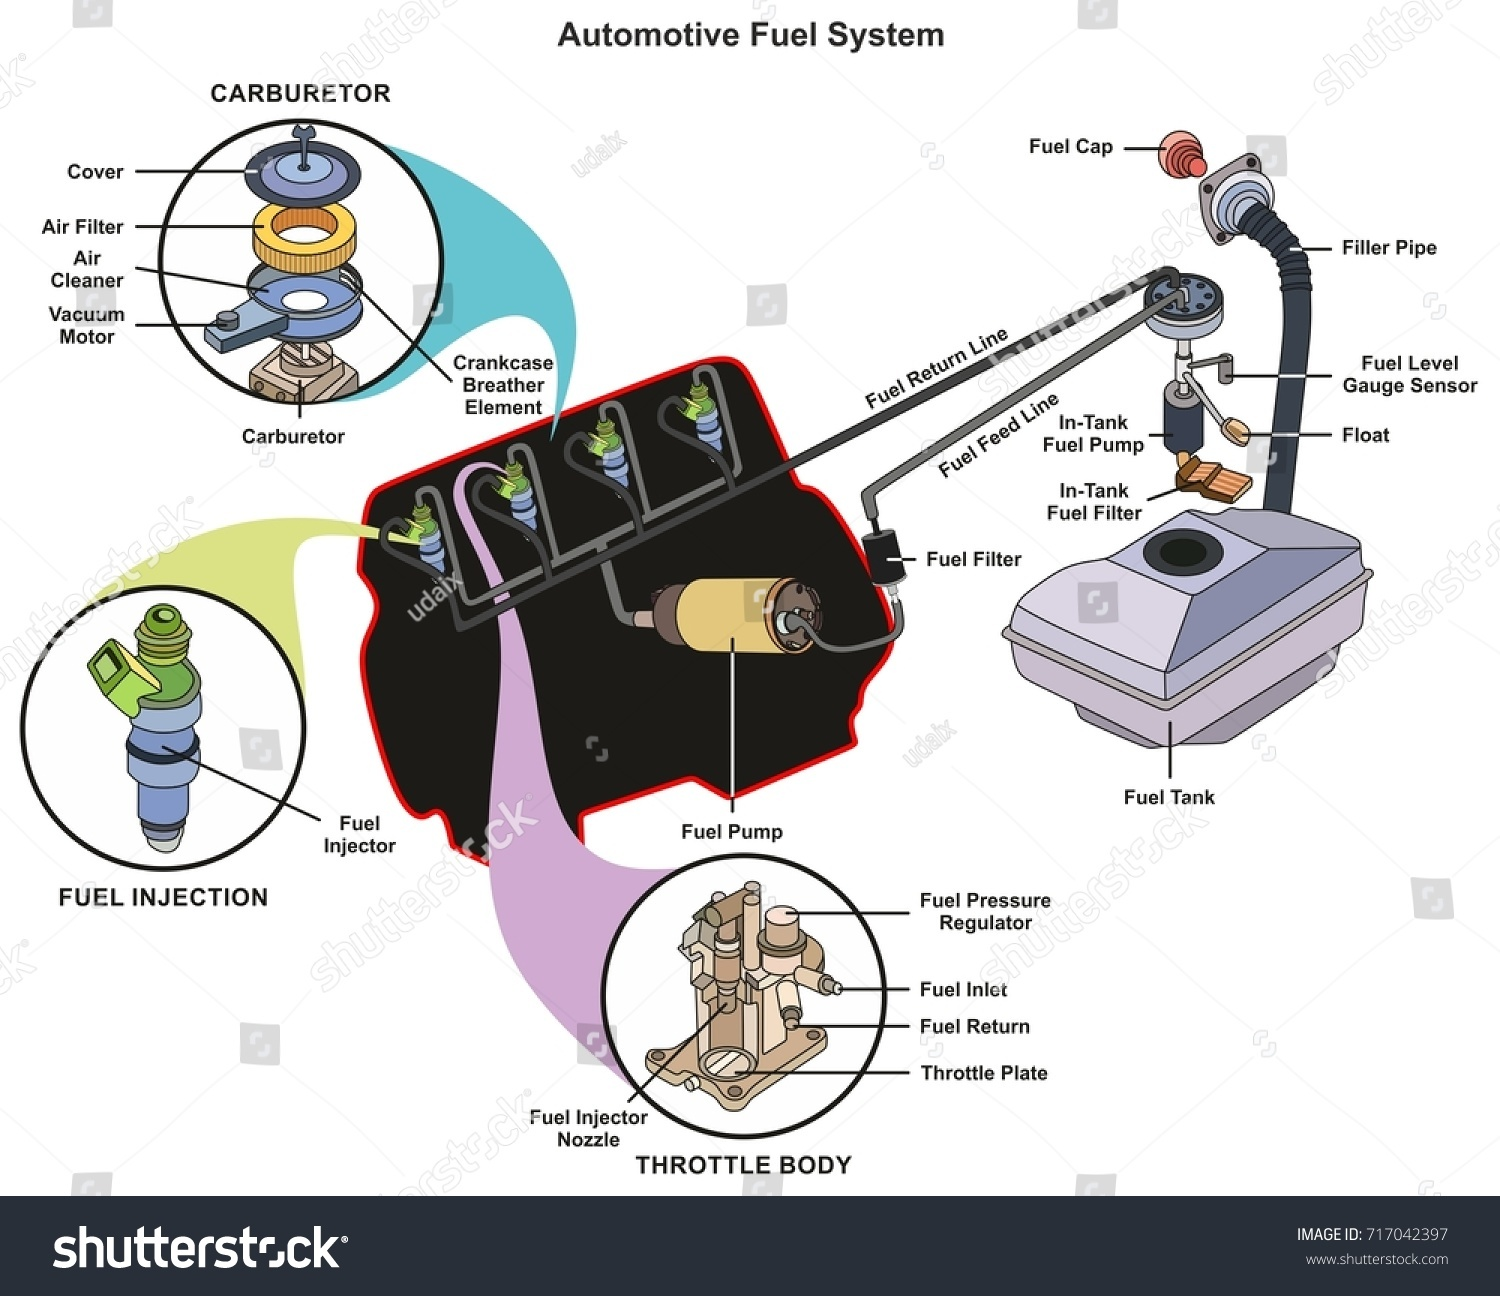 hight resolution of automotive fuel system infographic diagram showing parts of carburetor injector throttle body from tank to engine process for mechanics and road traffic